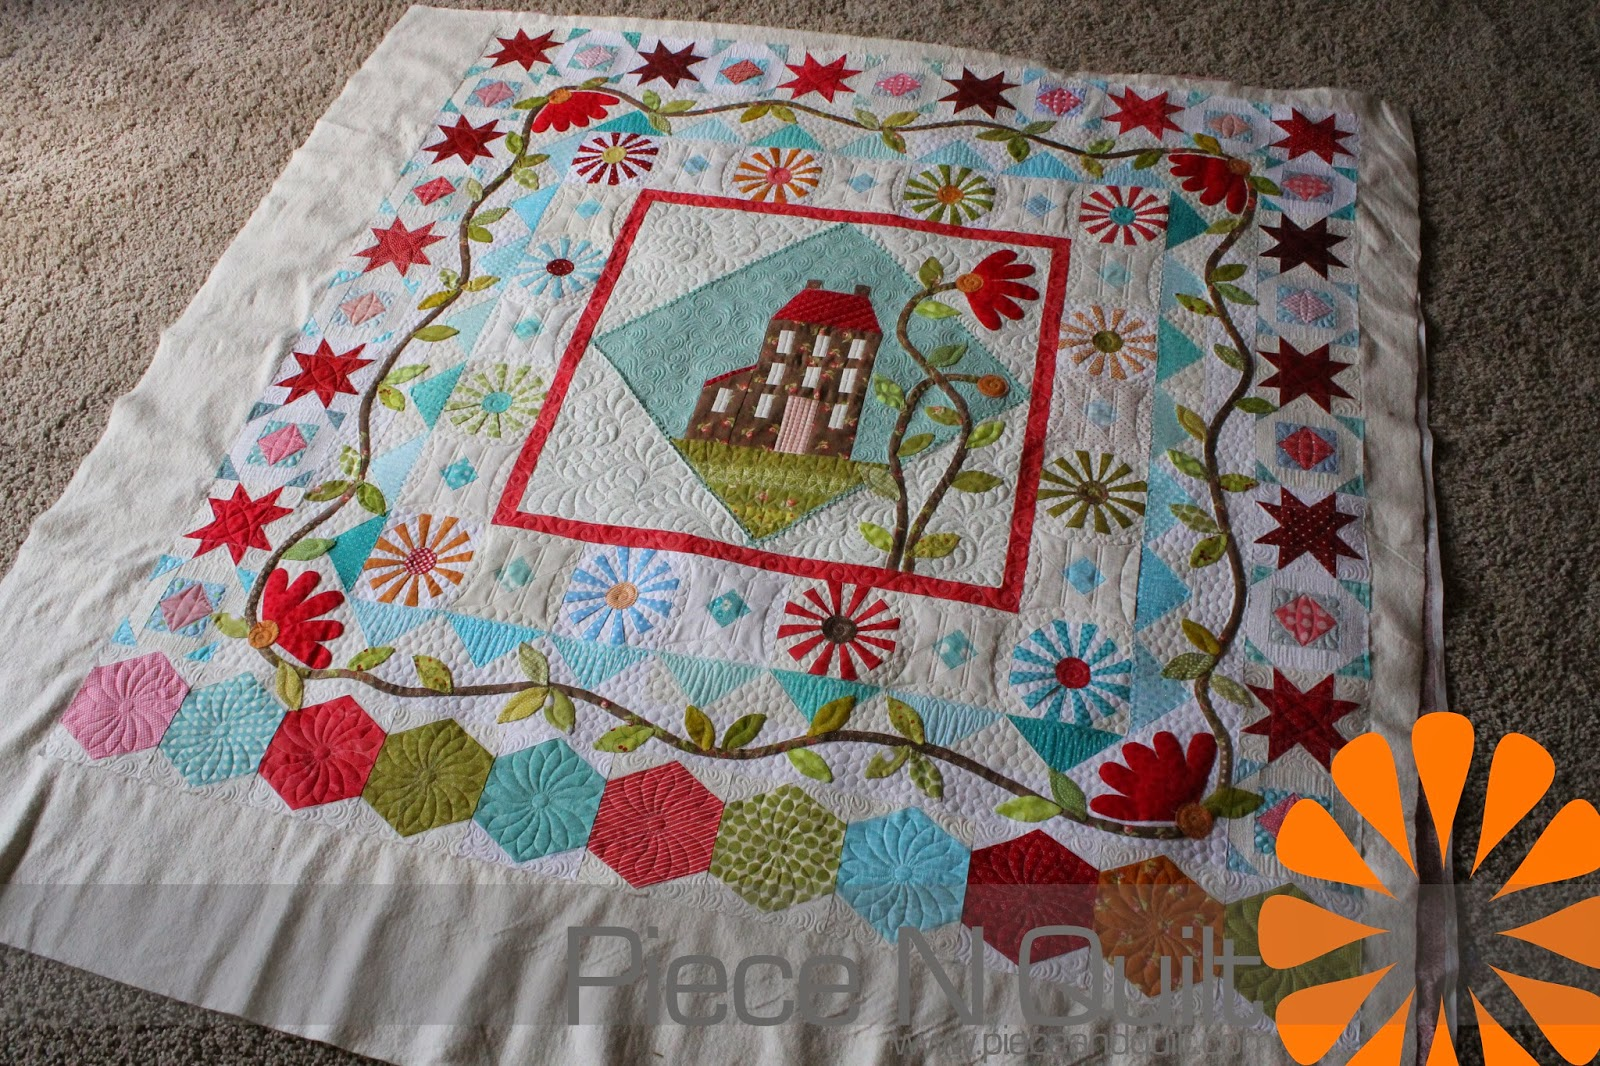 Piece N Quilt: Saturday Sampler